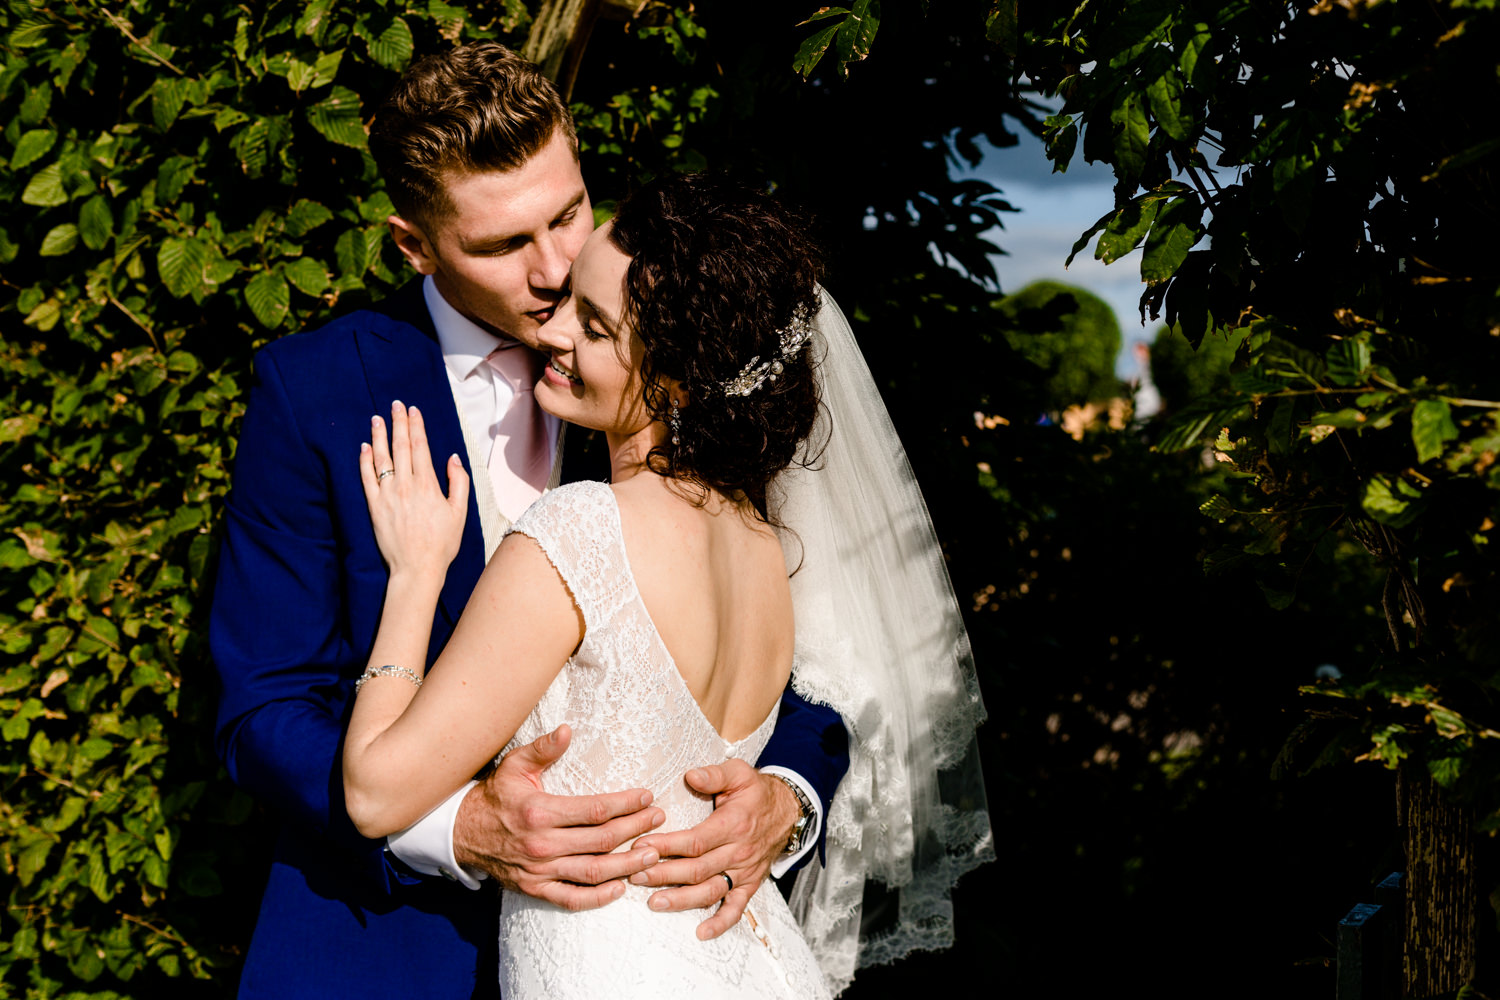 Bride and groom embrace in front of a hedge at Pryors Hayes venue.